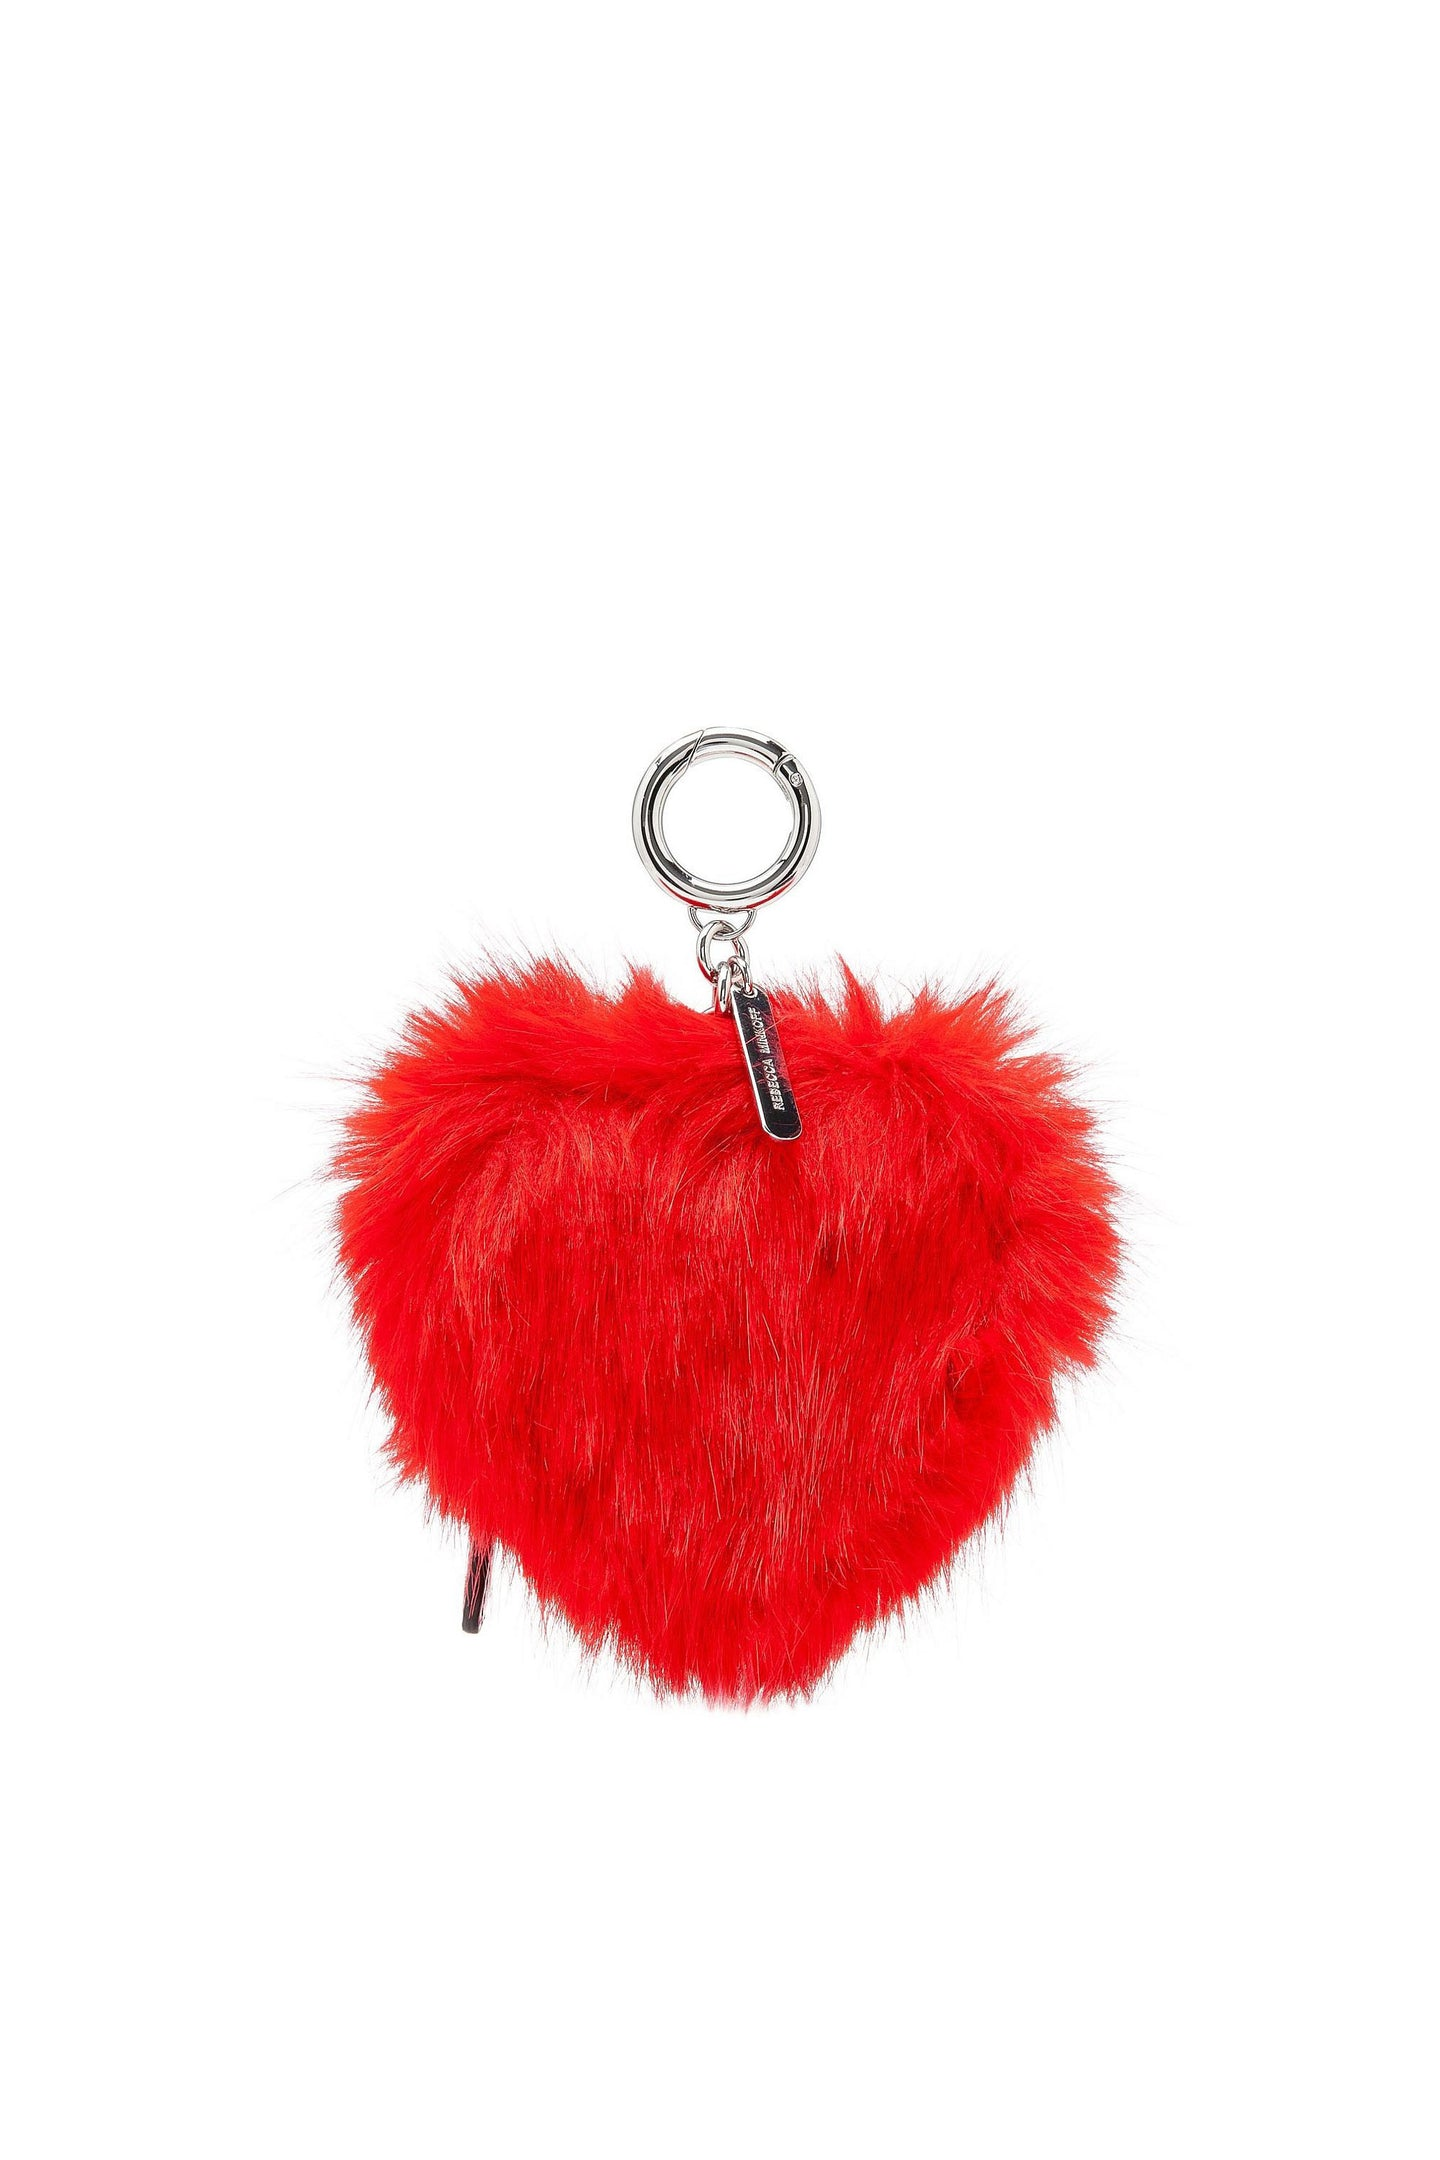 HEART COIN POUCH BAG CHARM